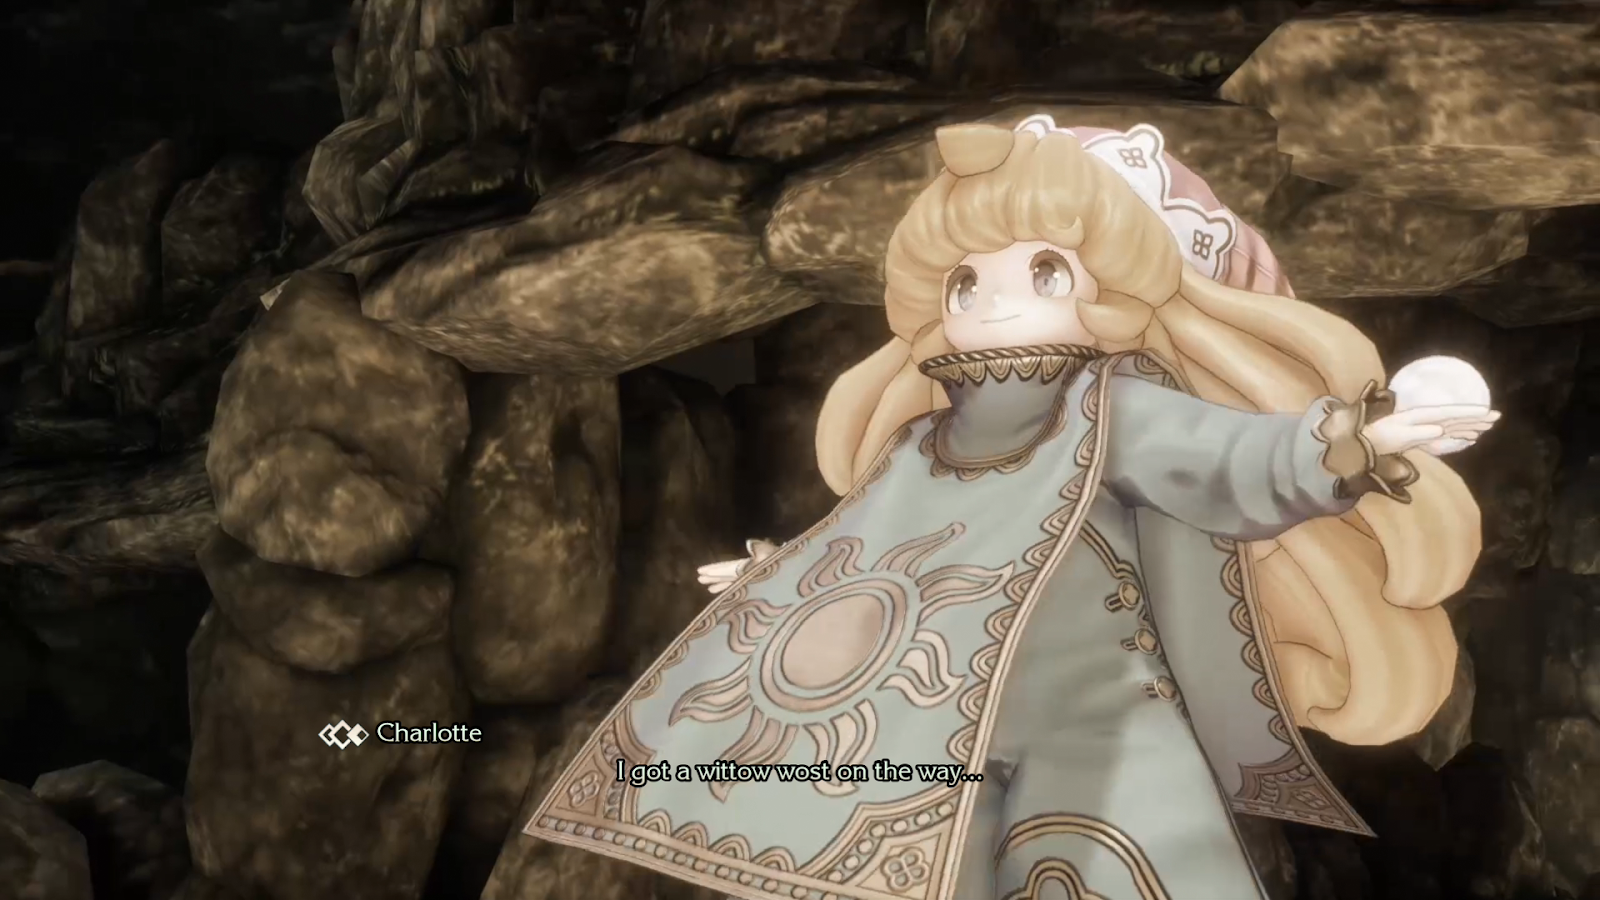 Trials Of Mana's Healer Talks Like A Baby And Pwease, No